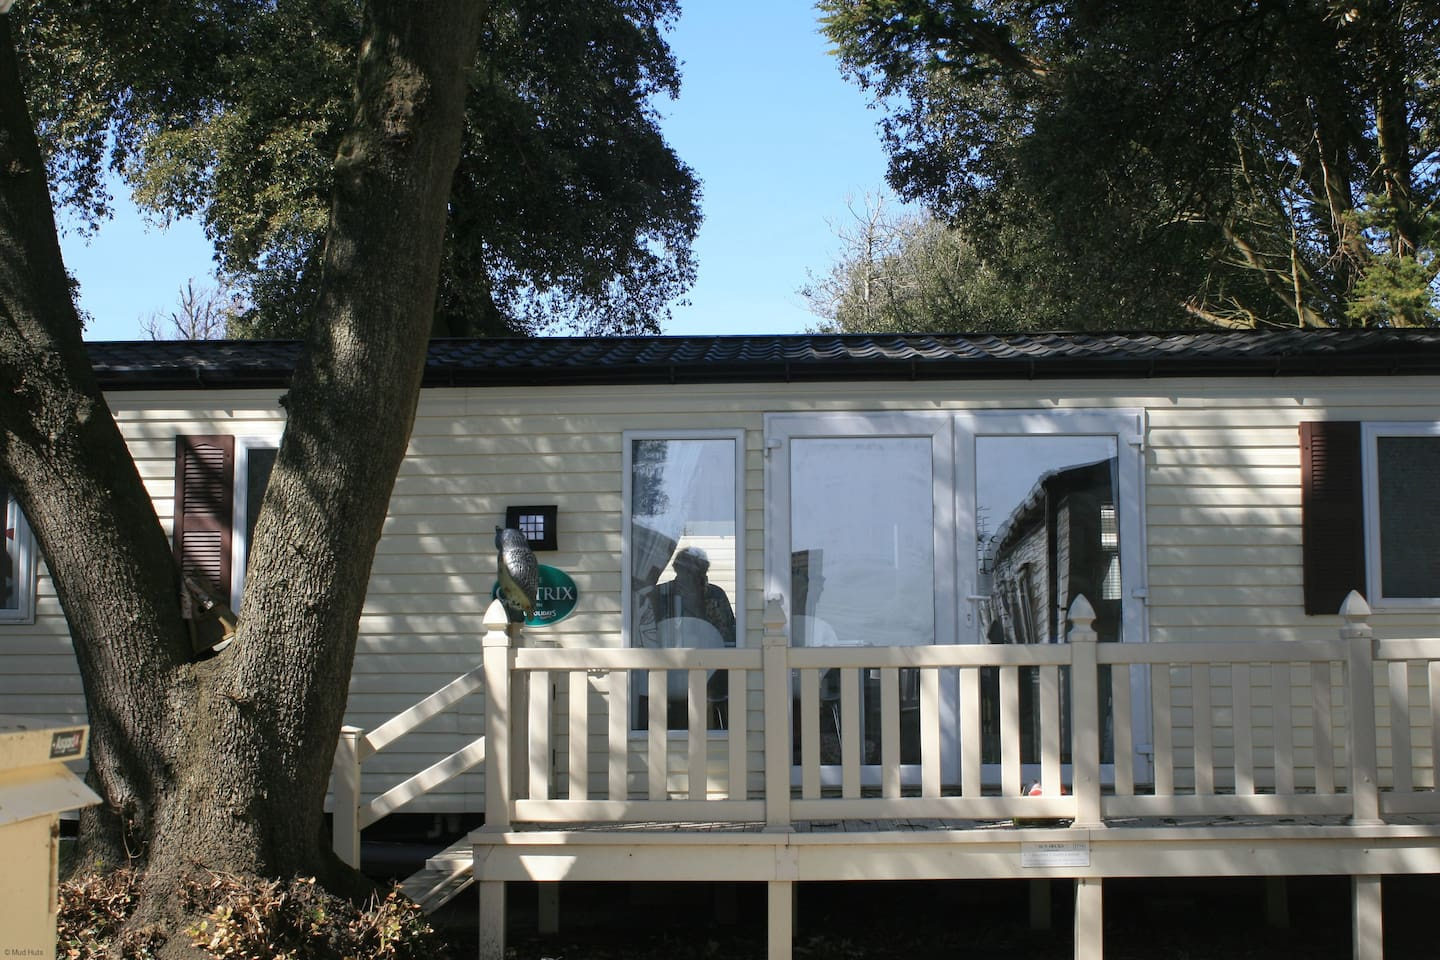 Side view of your holiday home showing decking